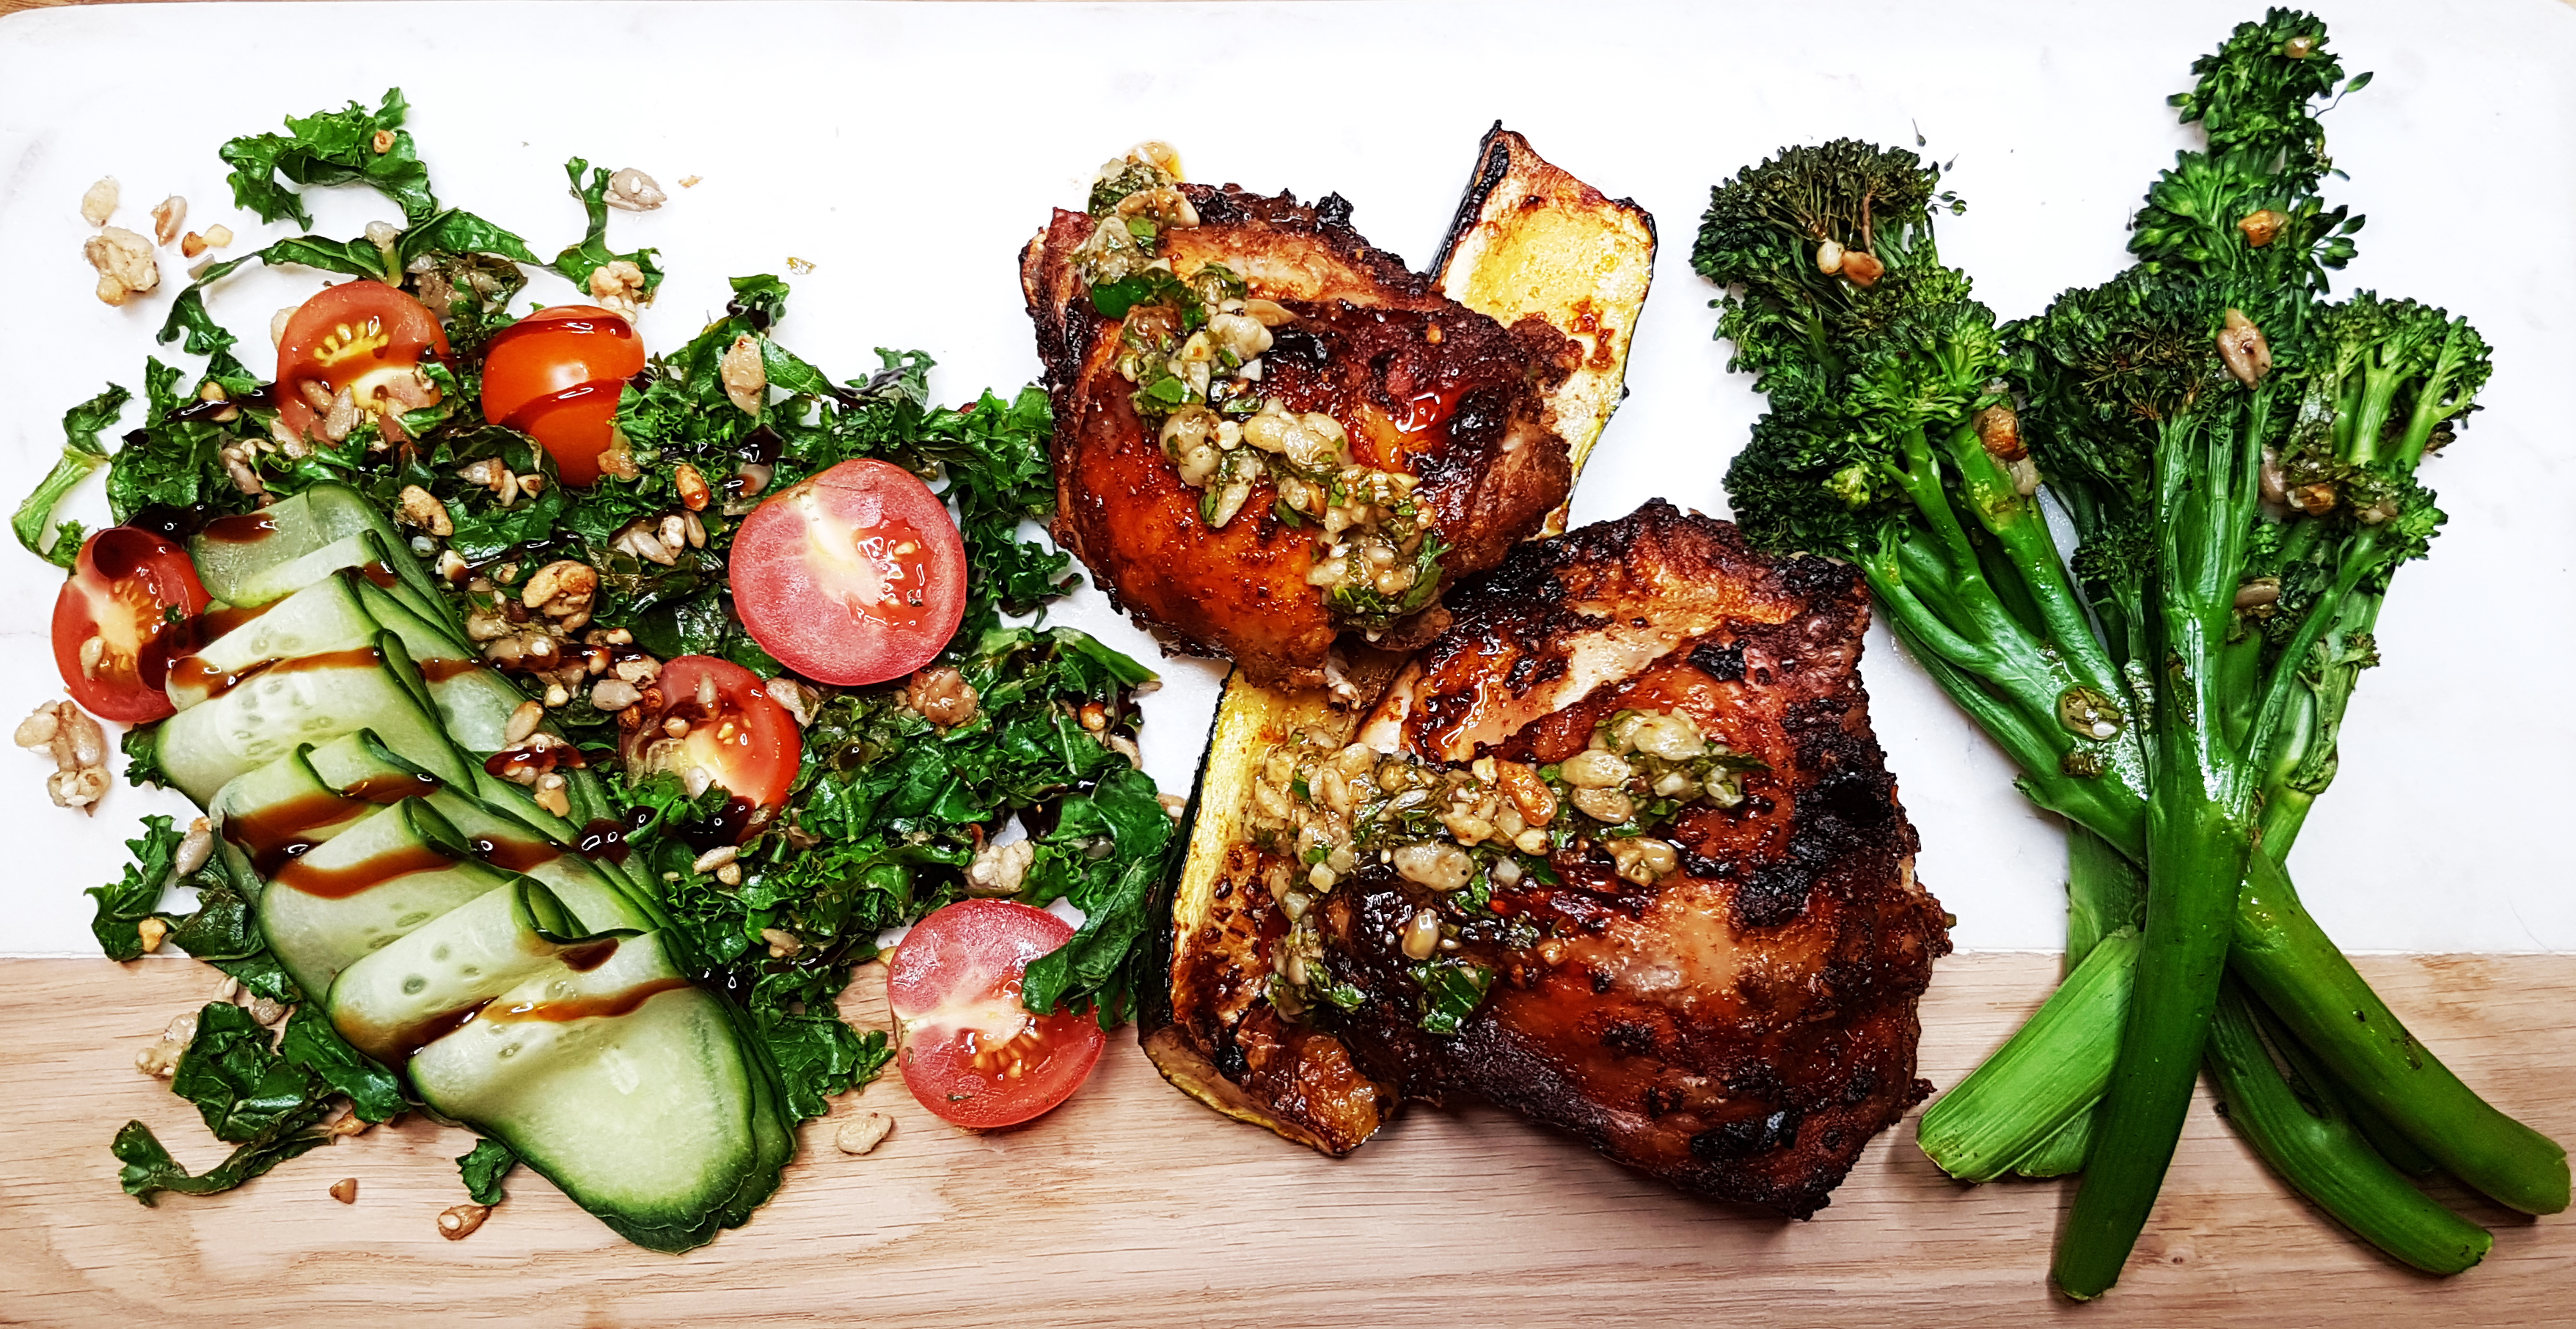 Portuguese Style Chicken Thighs with Zucchini, Broccolini & Kale Salad